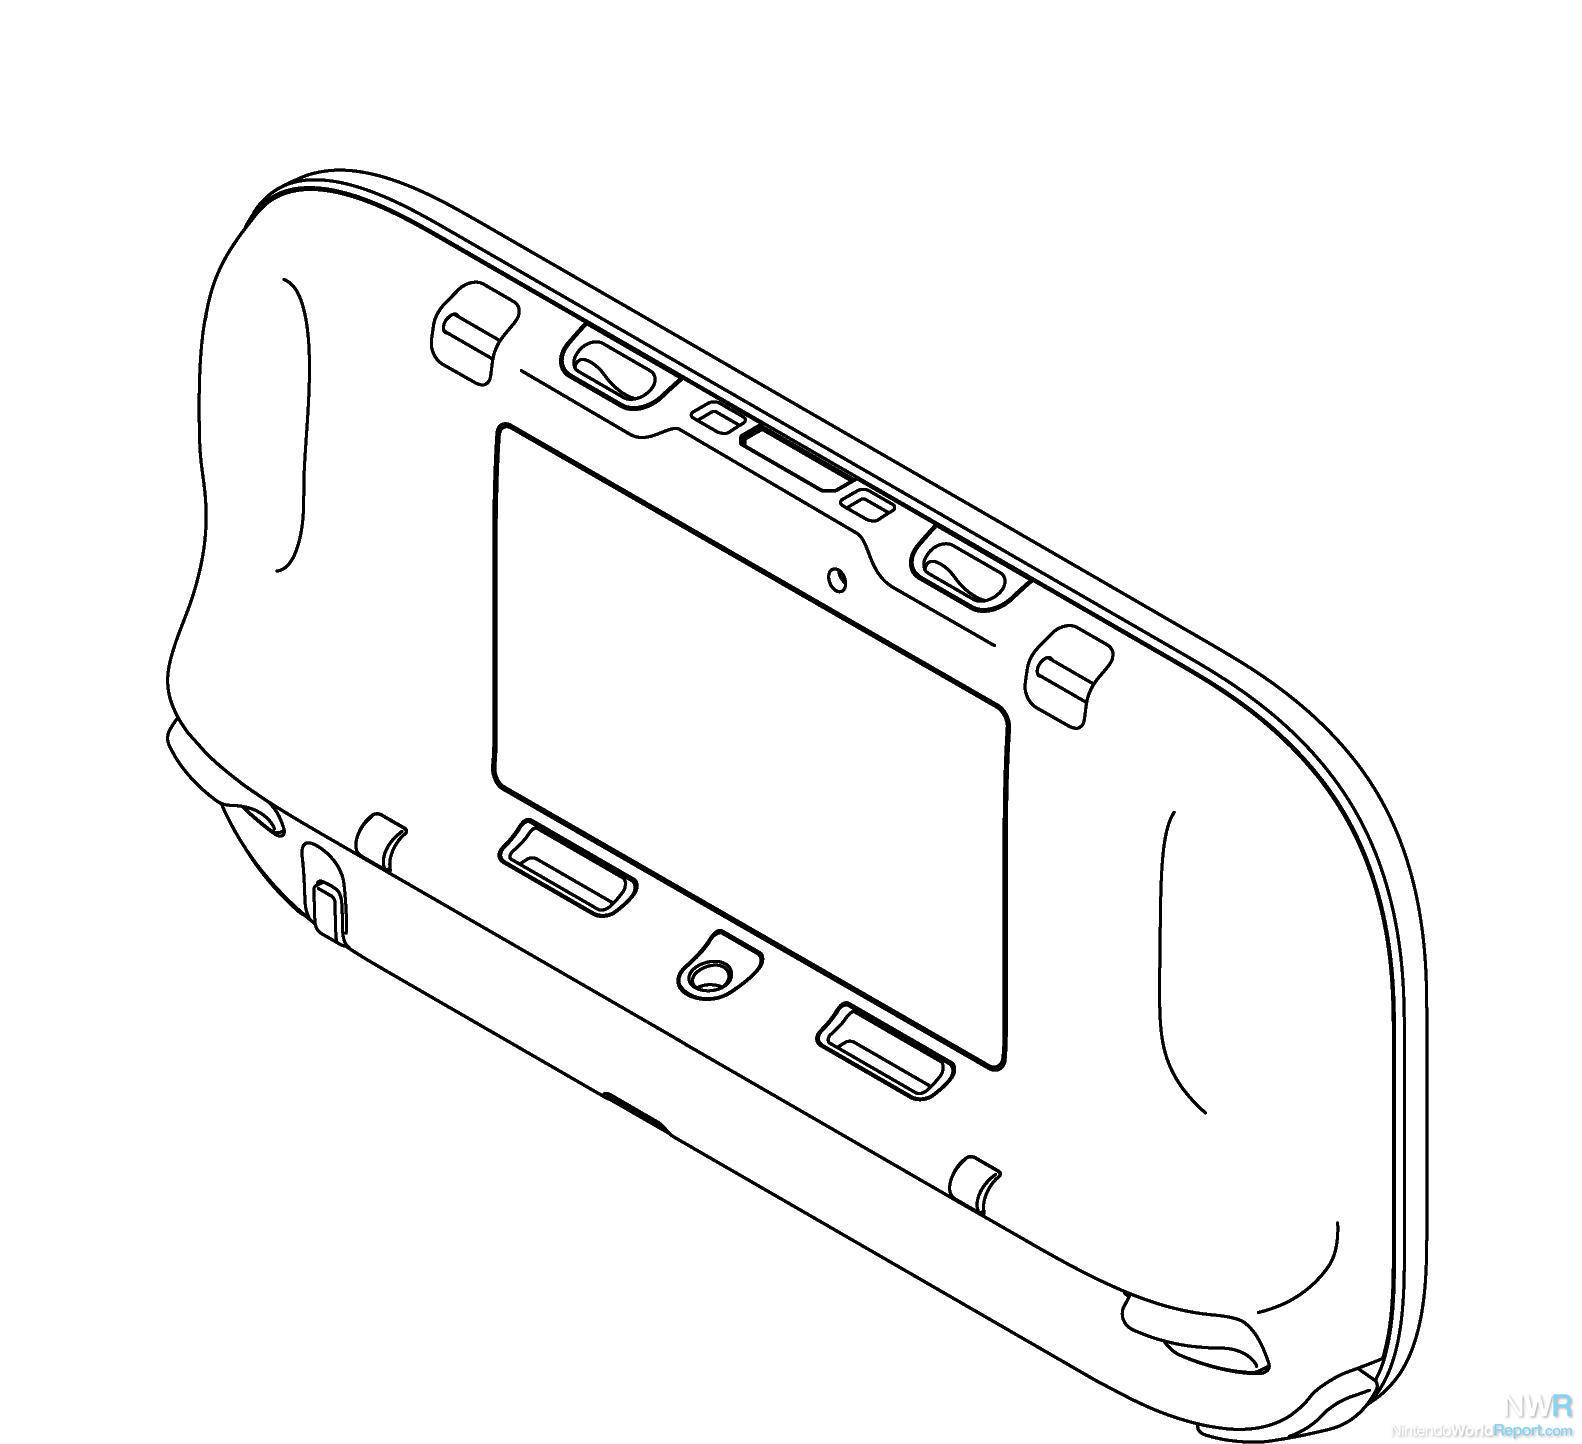 Final Wii U Controller to Use Traditional Analog Sticks